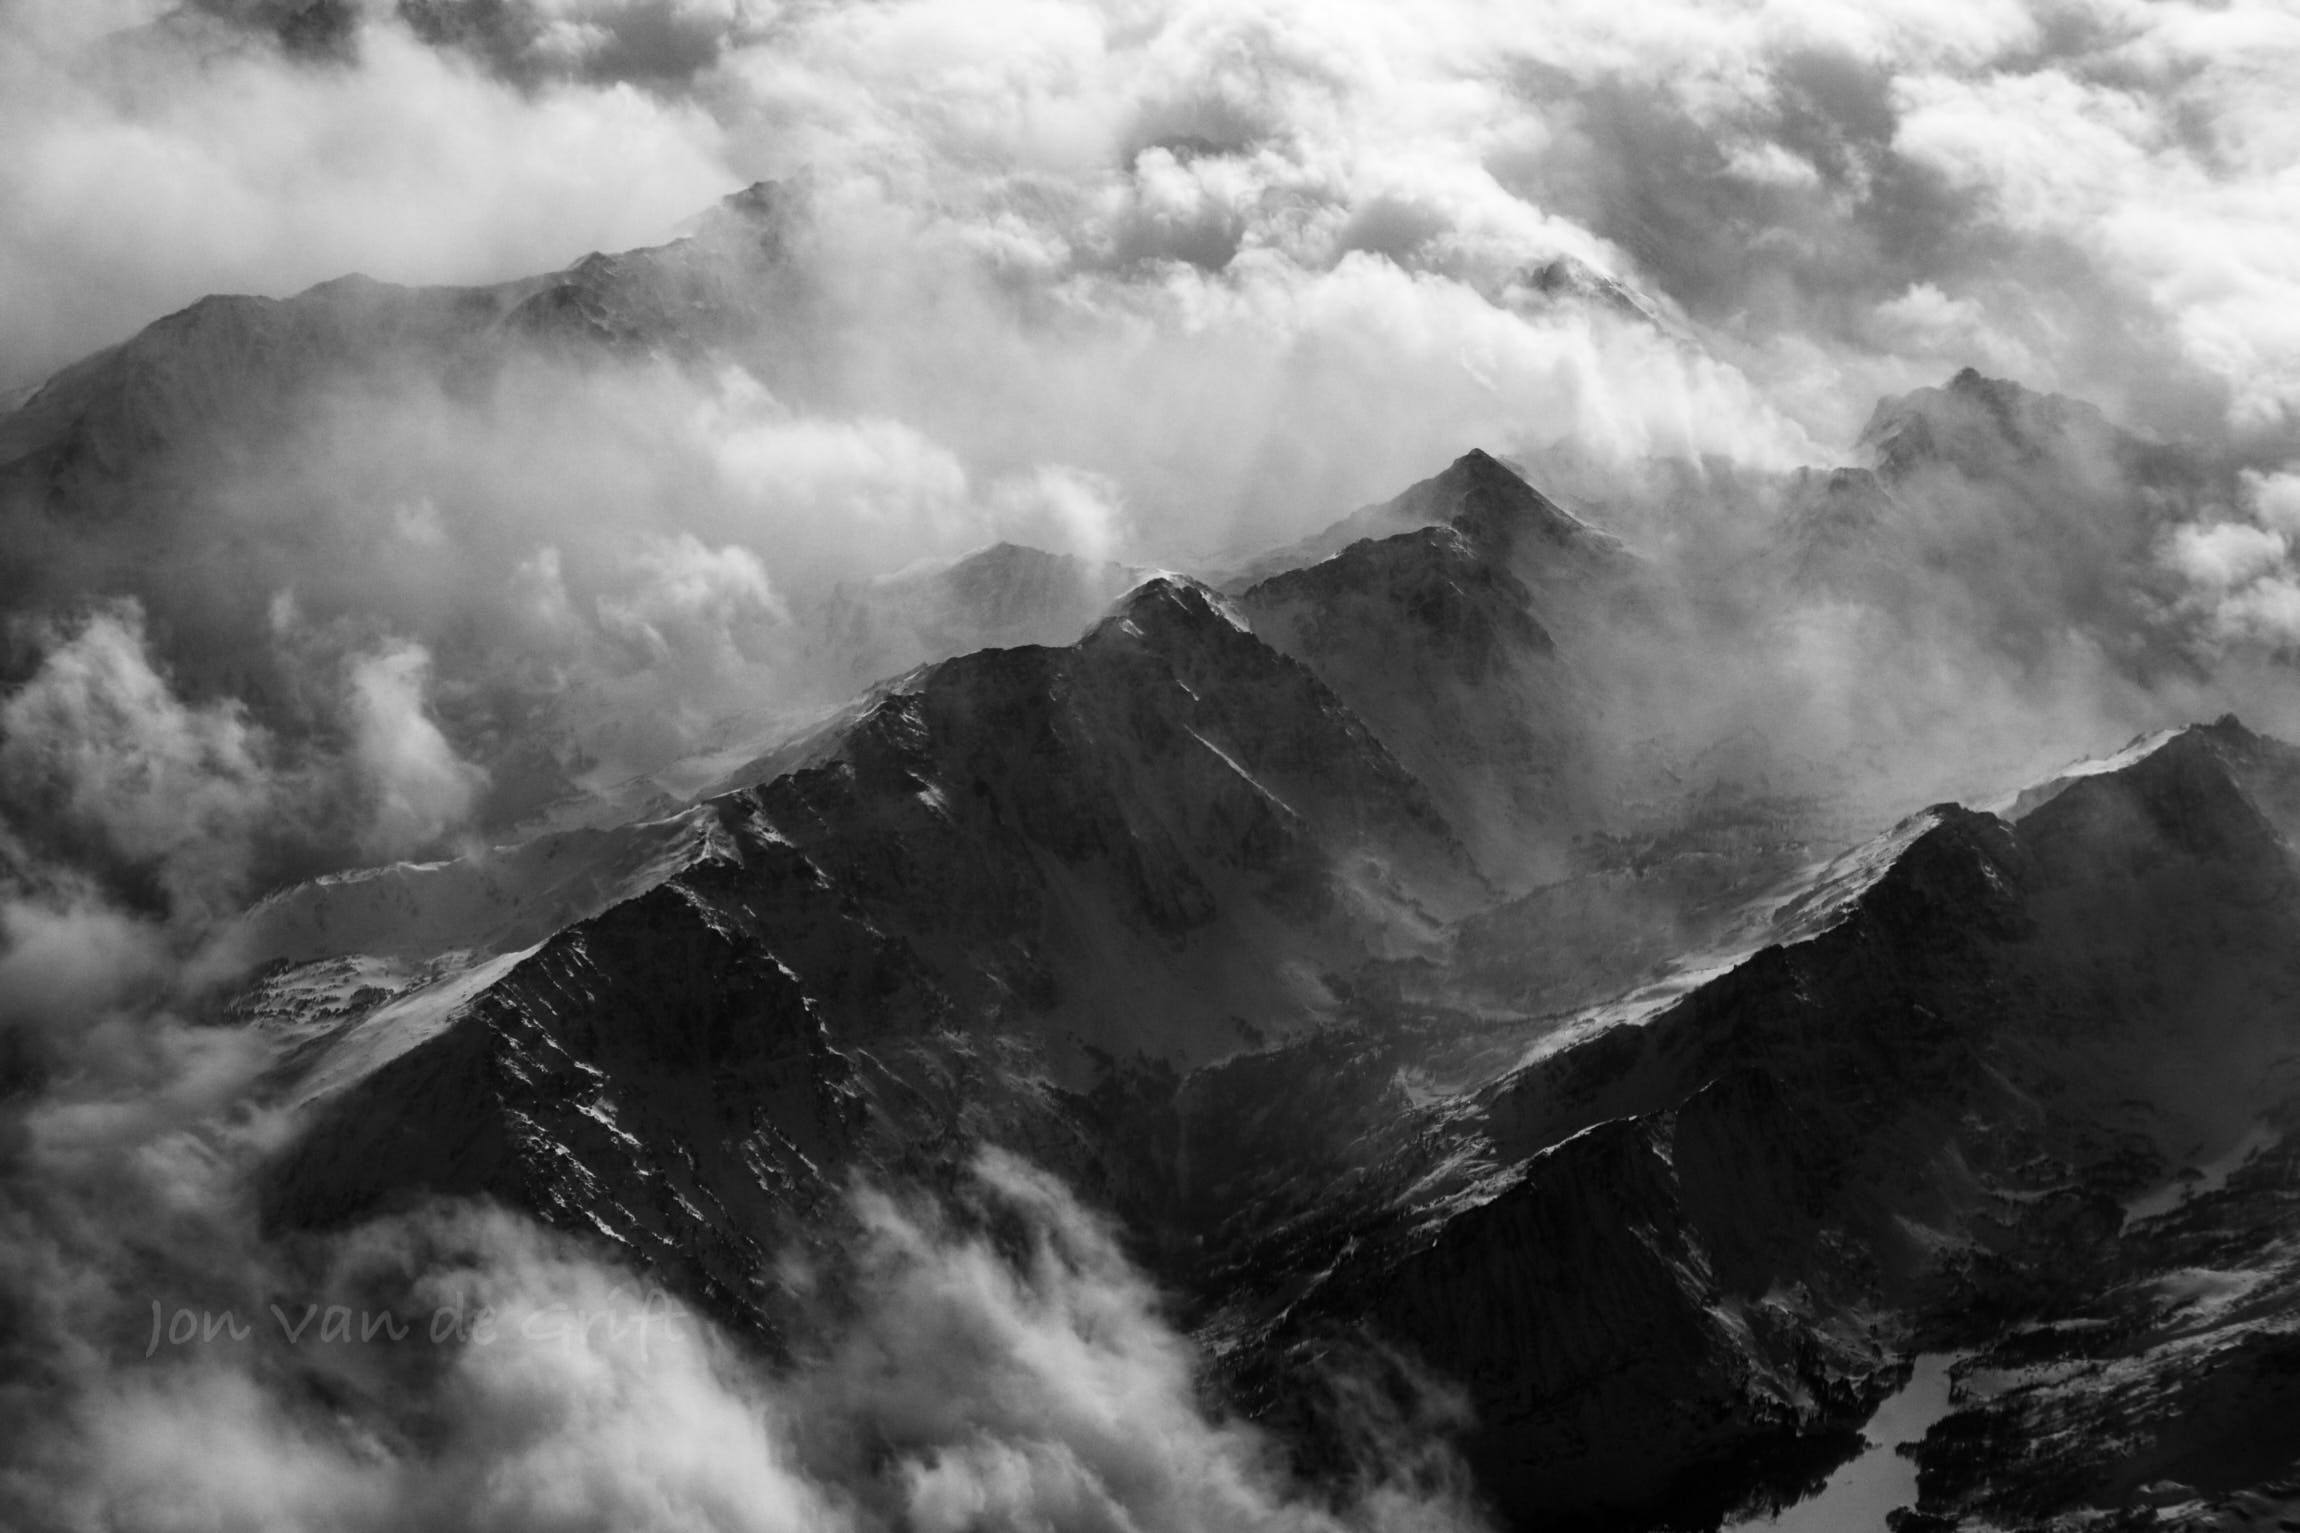 Black and white aerial photograph of clouds surrounding mountains.